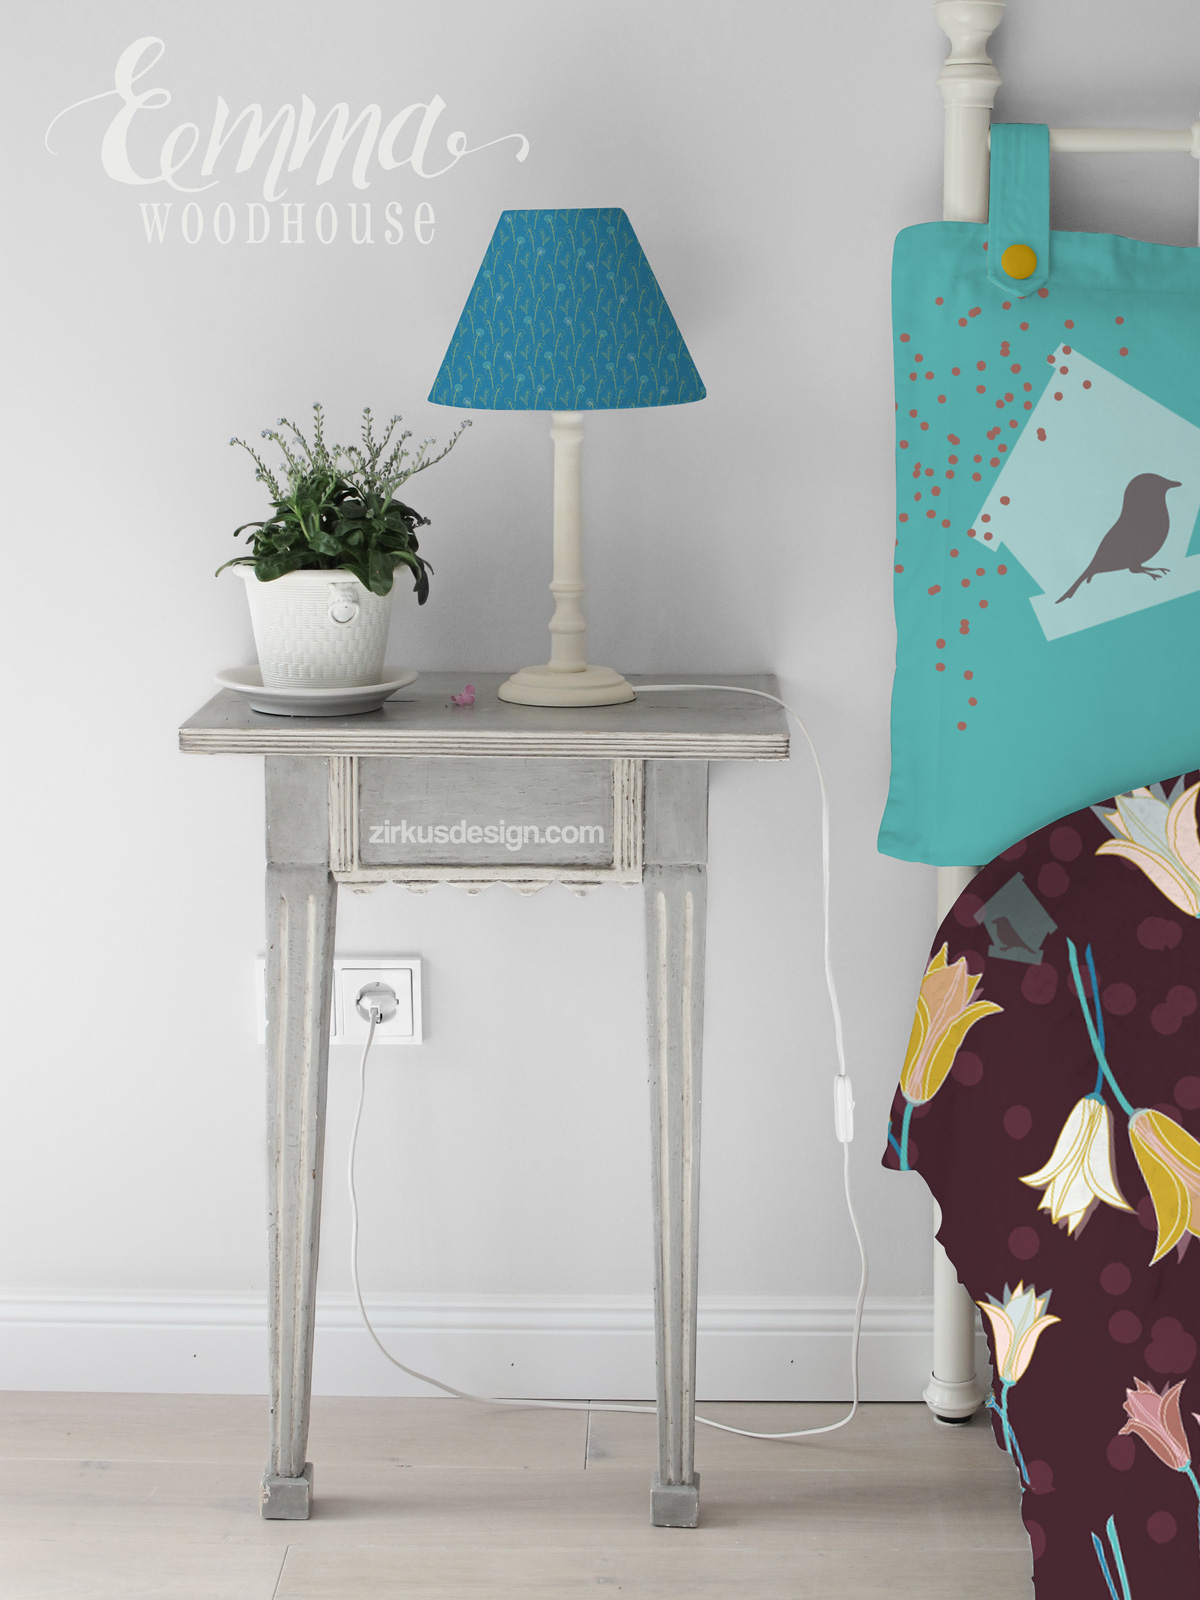 Zirkus Design | Emma Woodhouse Surfac Pattern Design Collection Bedroom Home Textiles Mockup